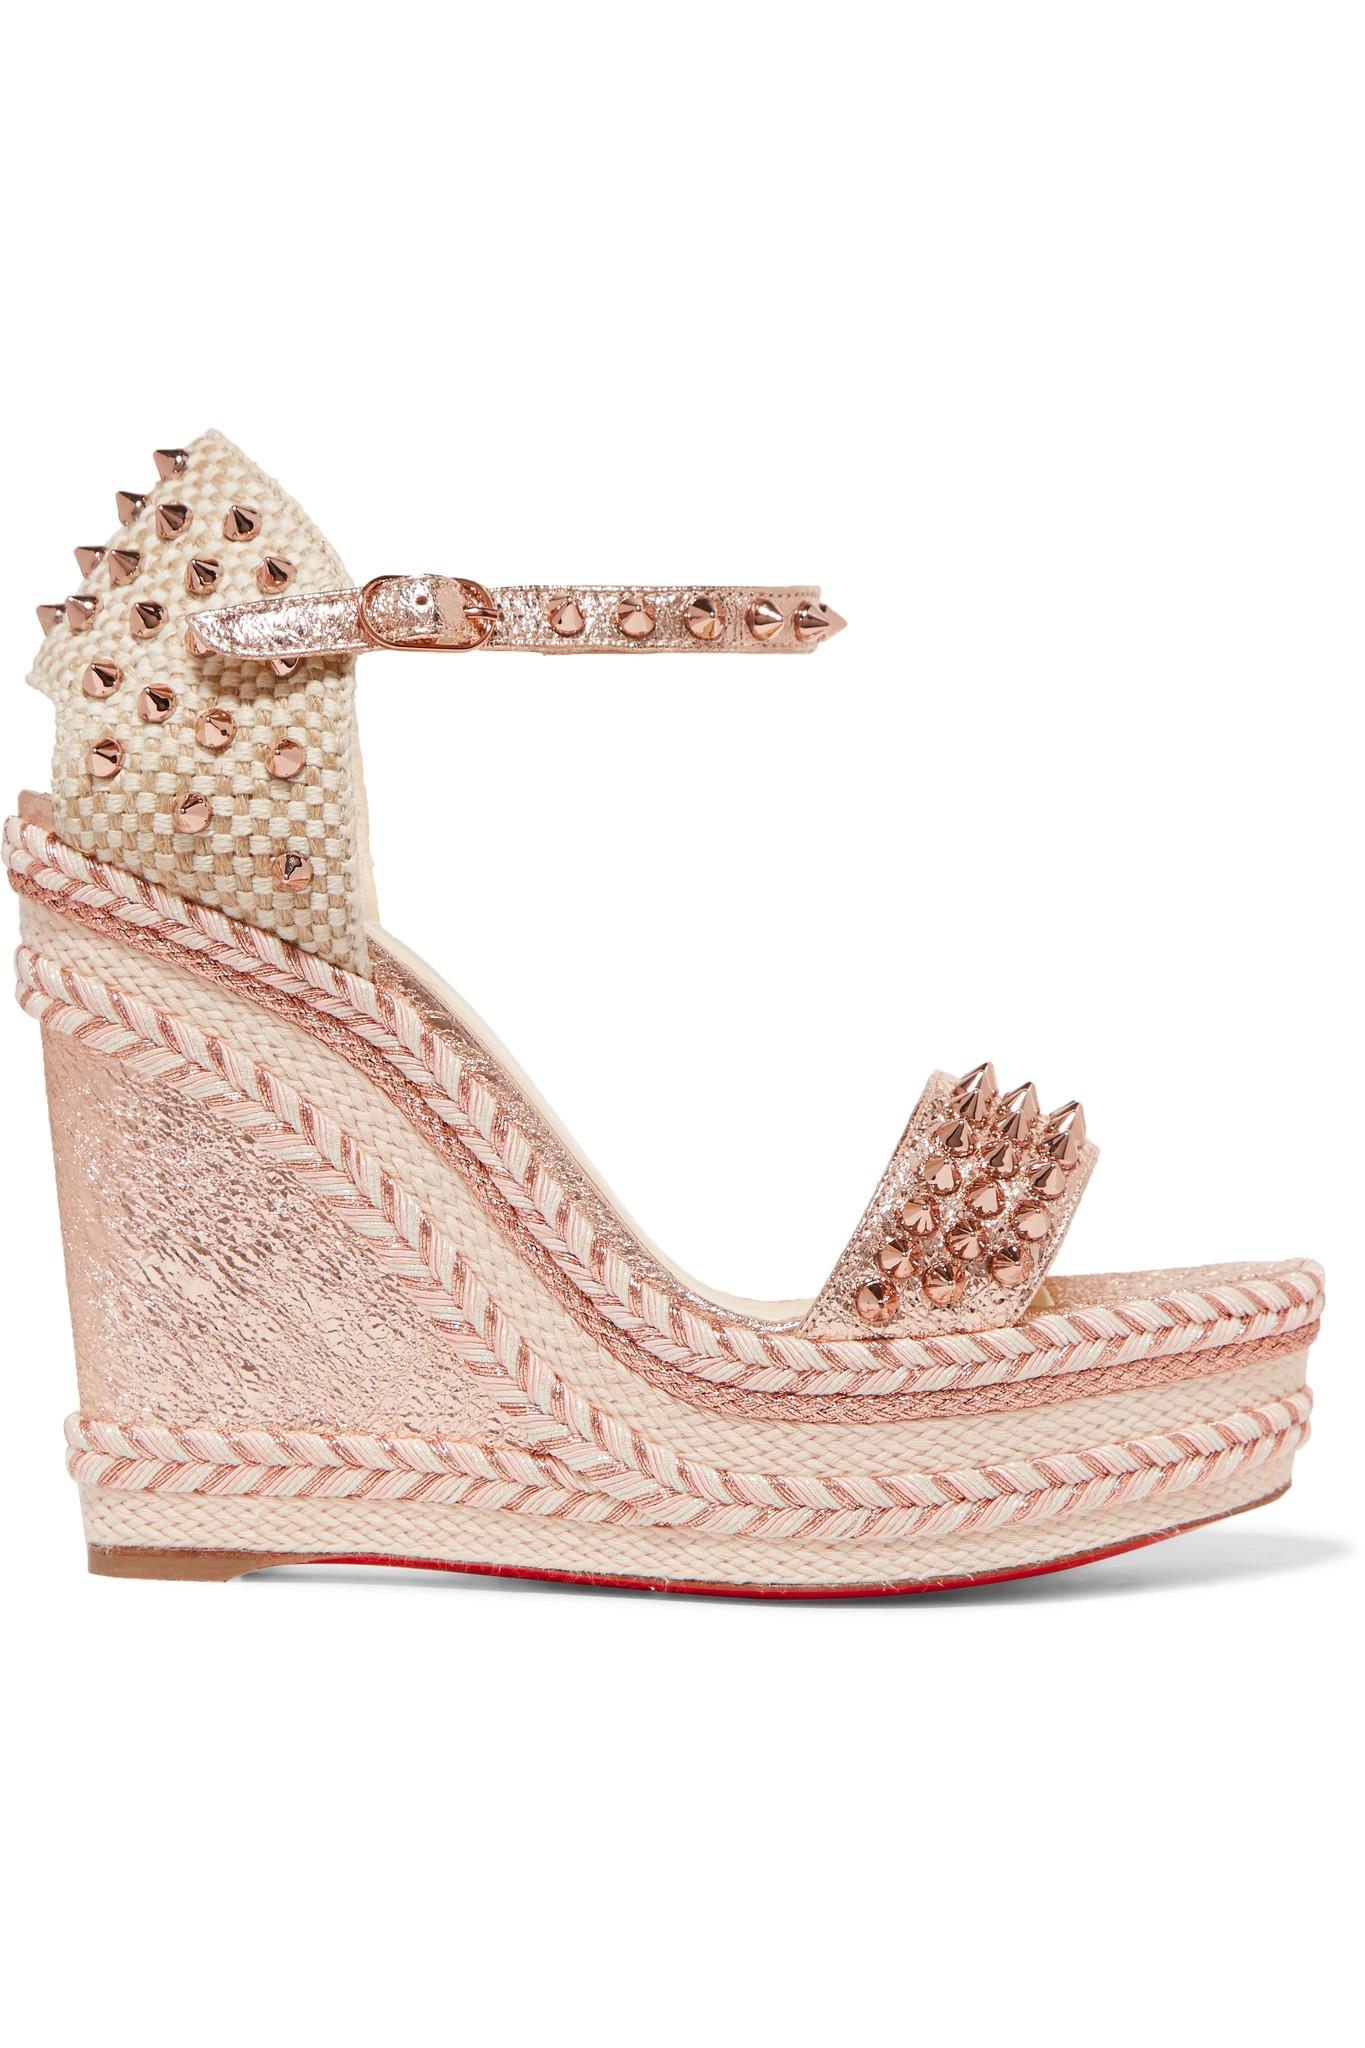 Christian Louboutin. Women's Pink Madmonica 120 Spiked Metallic  Cracked-leather Espadrille Wedge Sandals